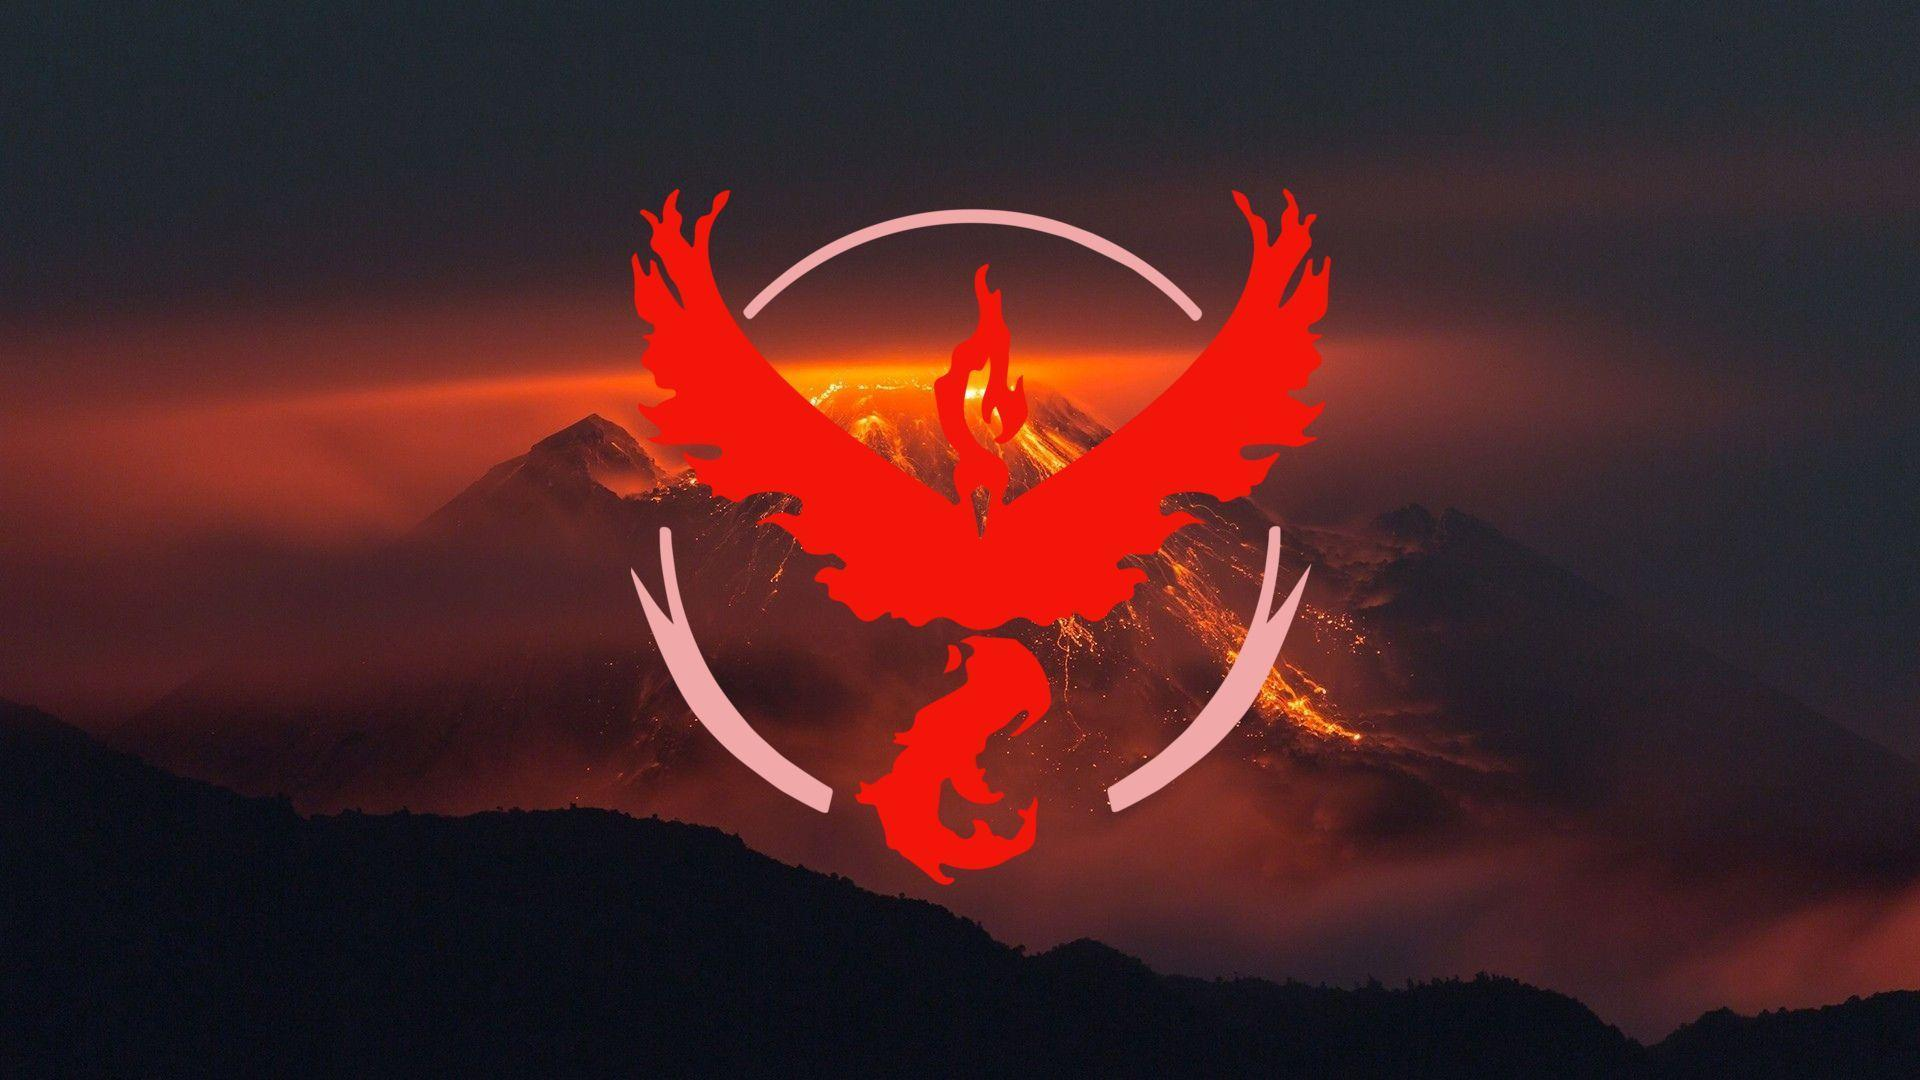 team-valor-wallpaper-37.jpg